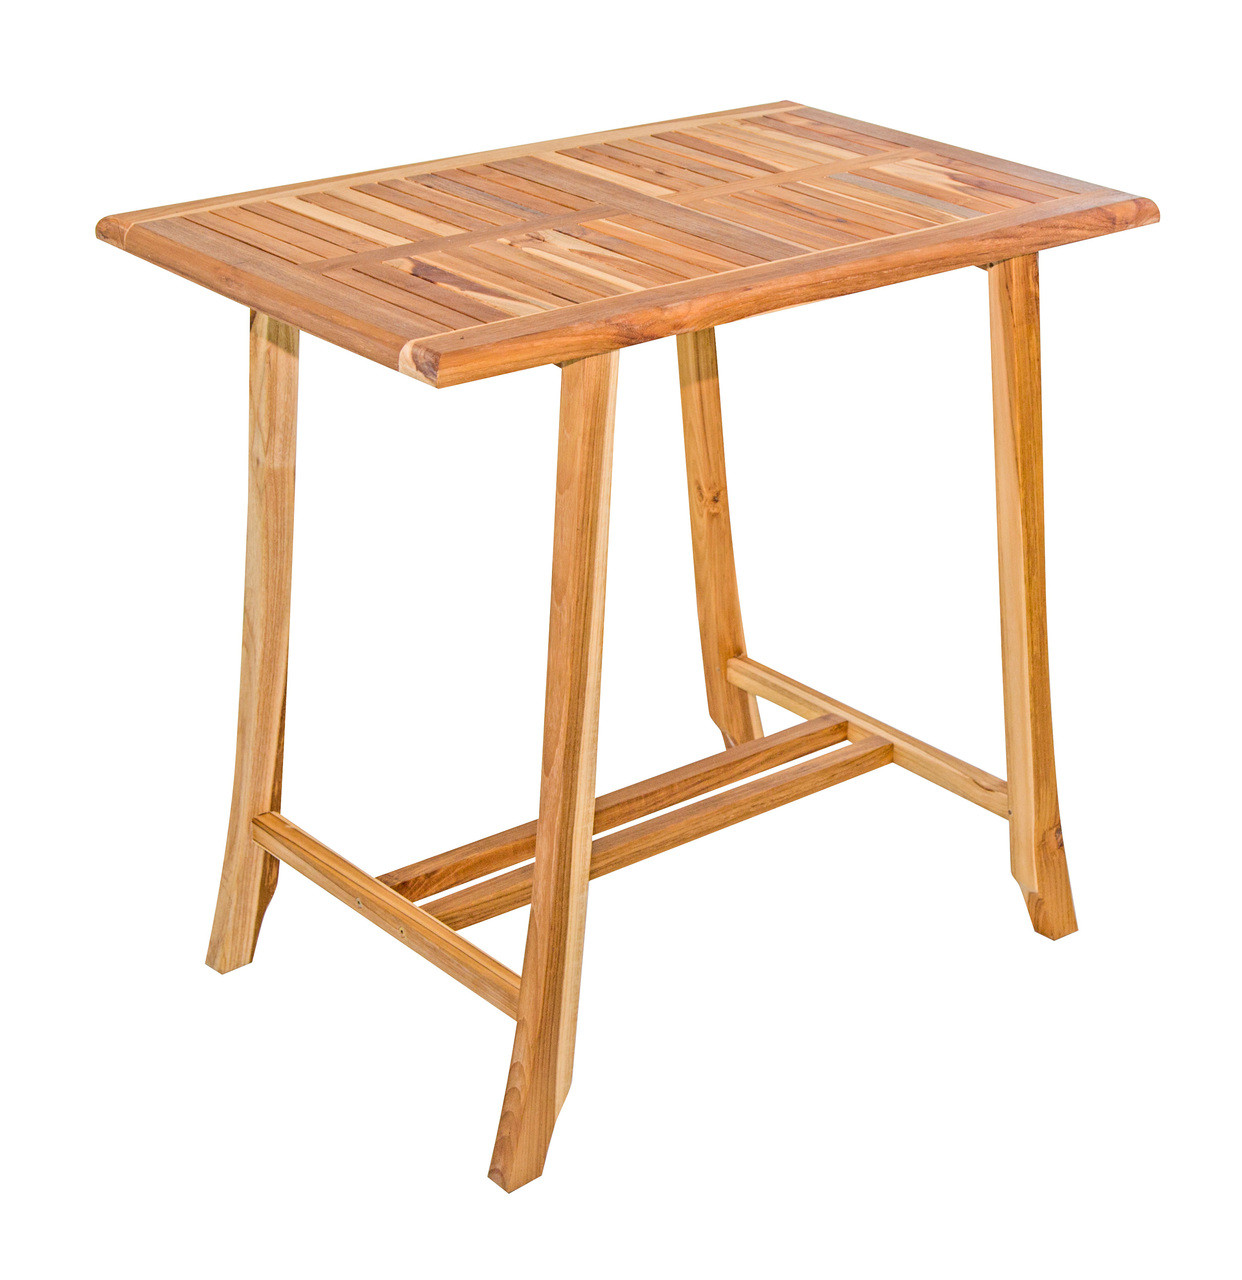 "EcoDecors Satori 35"" x 23.5"" x 34"" Teak Wood Table in EarthyTeak Finish"